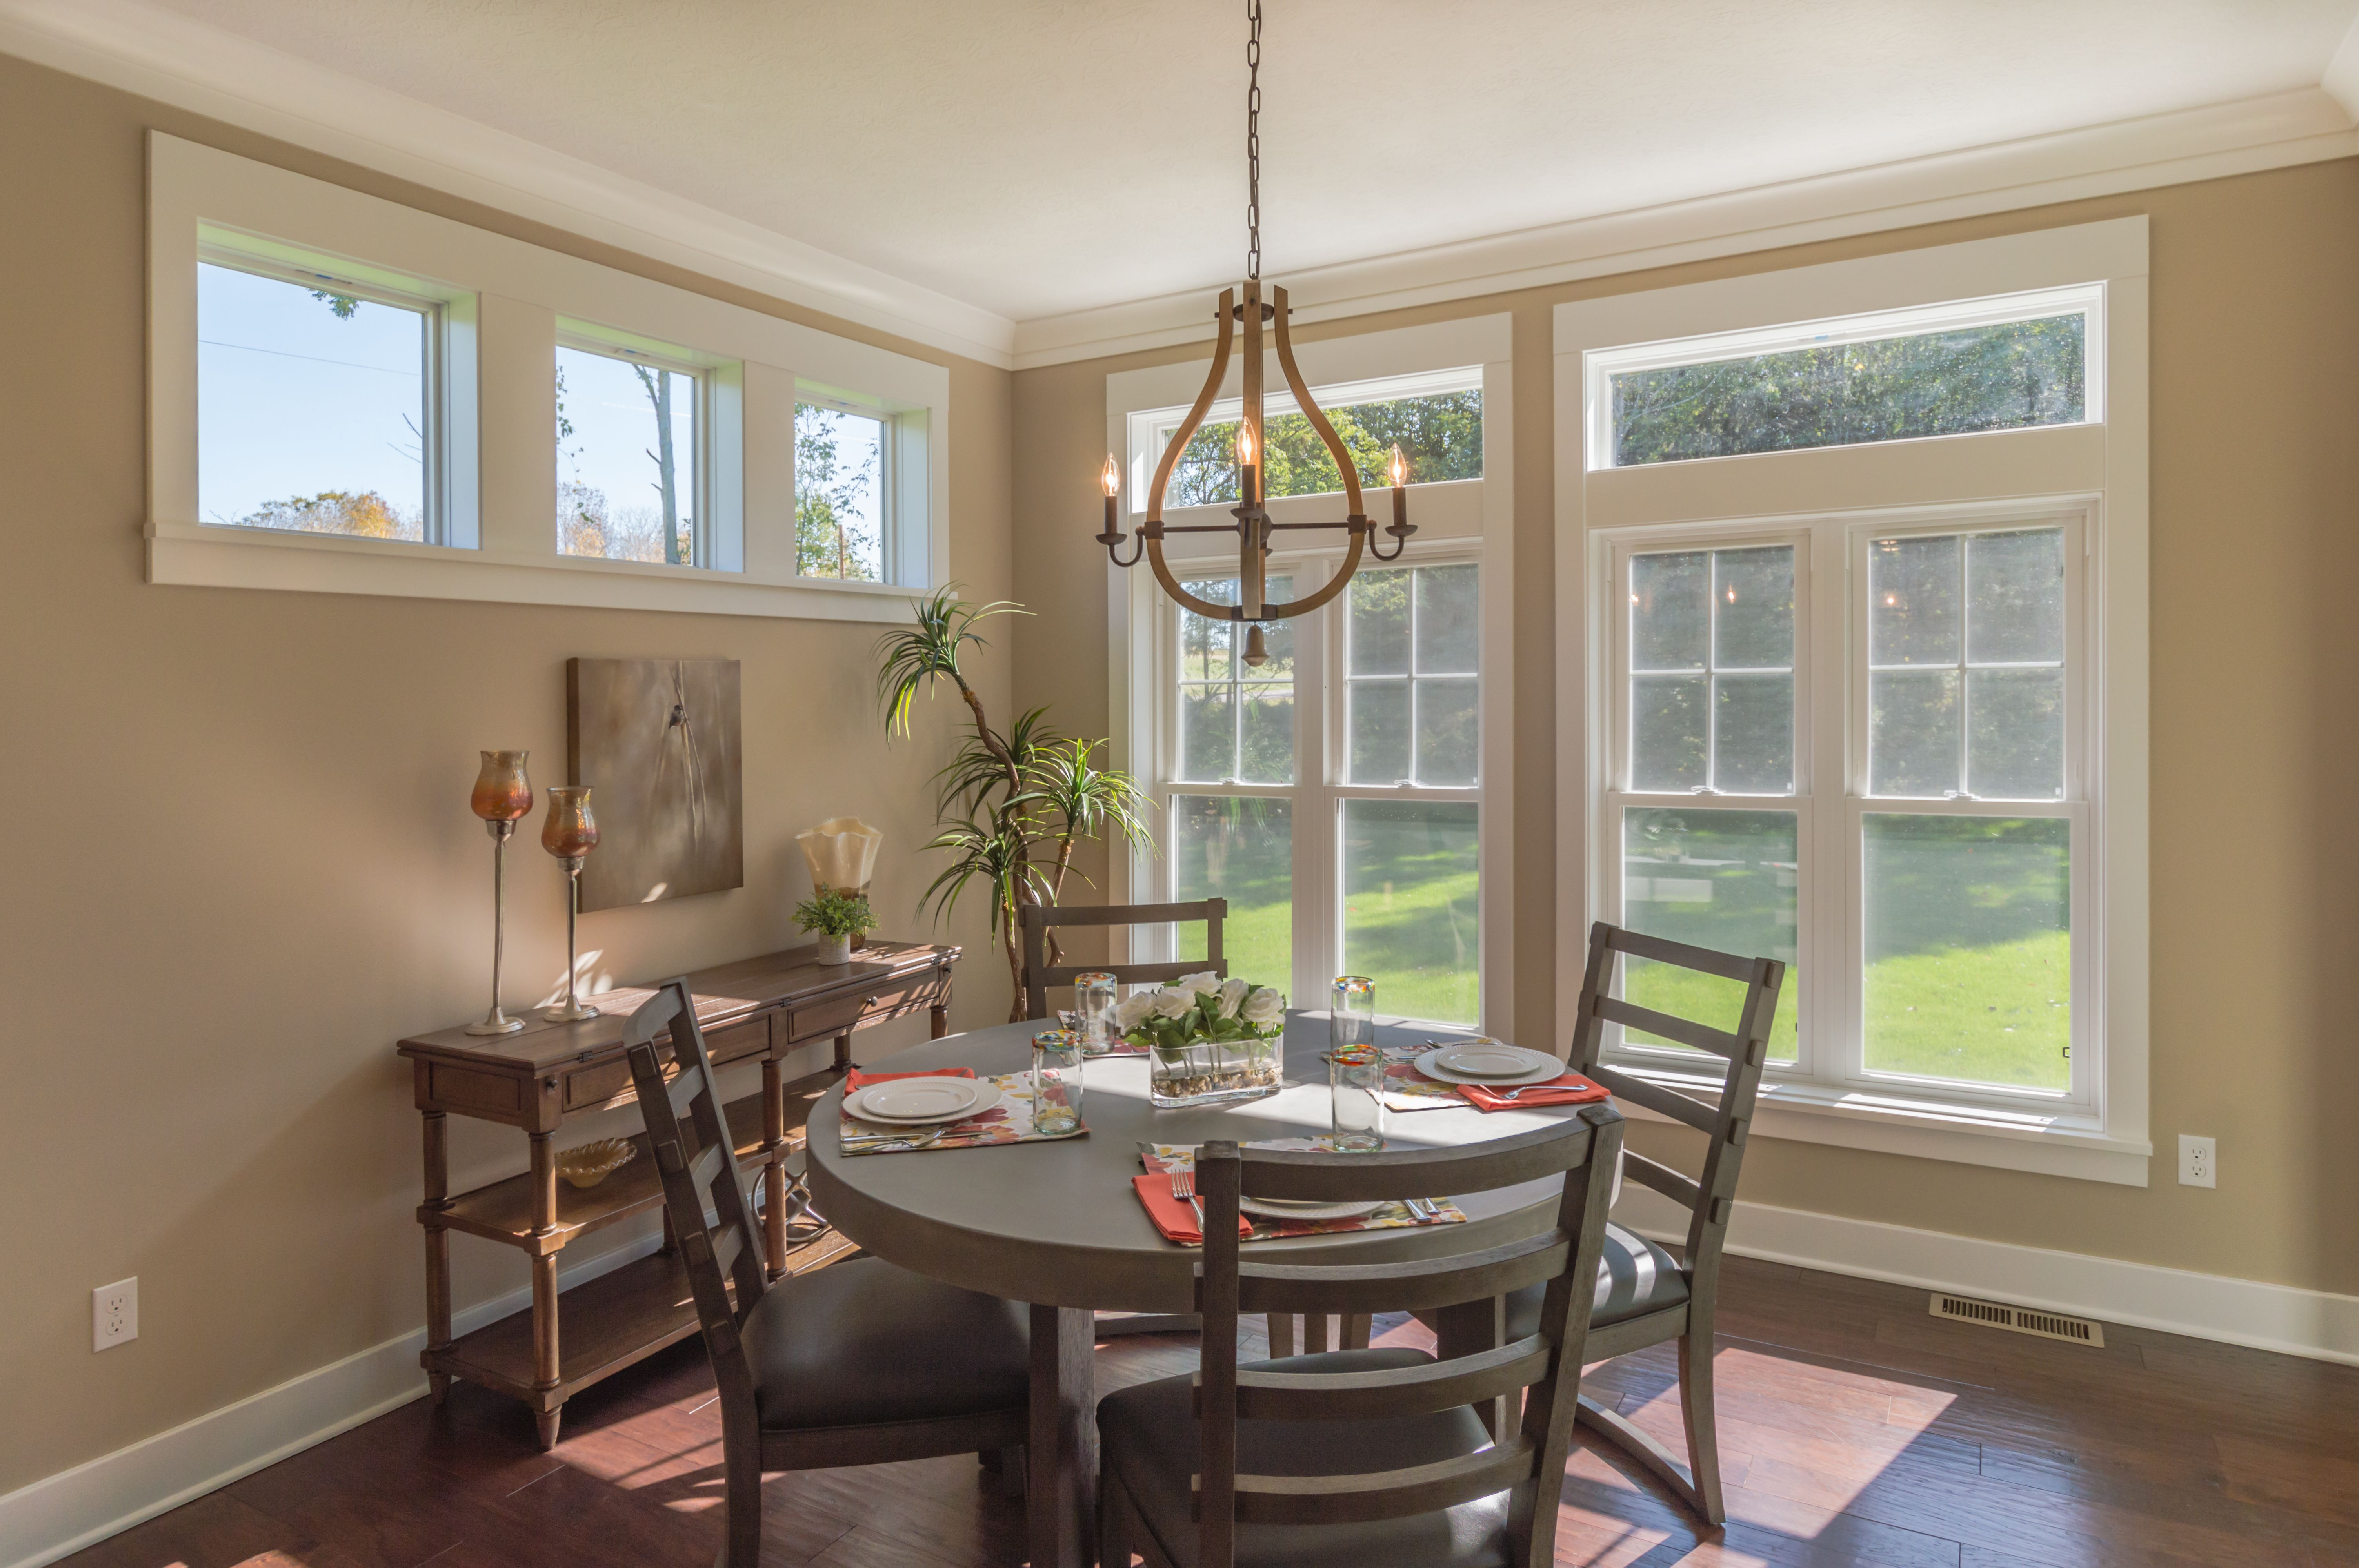 Kitchen featured in The Woodbury By Riedman Homes in Rochester, NY